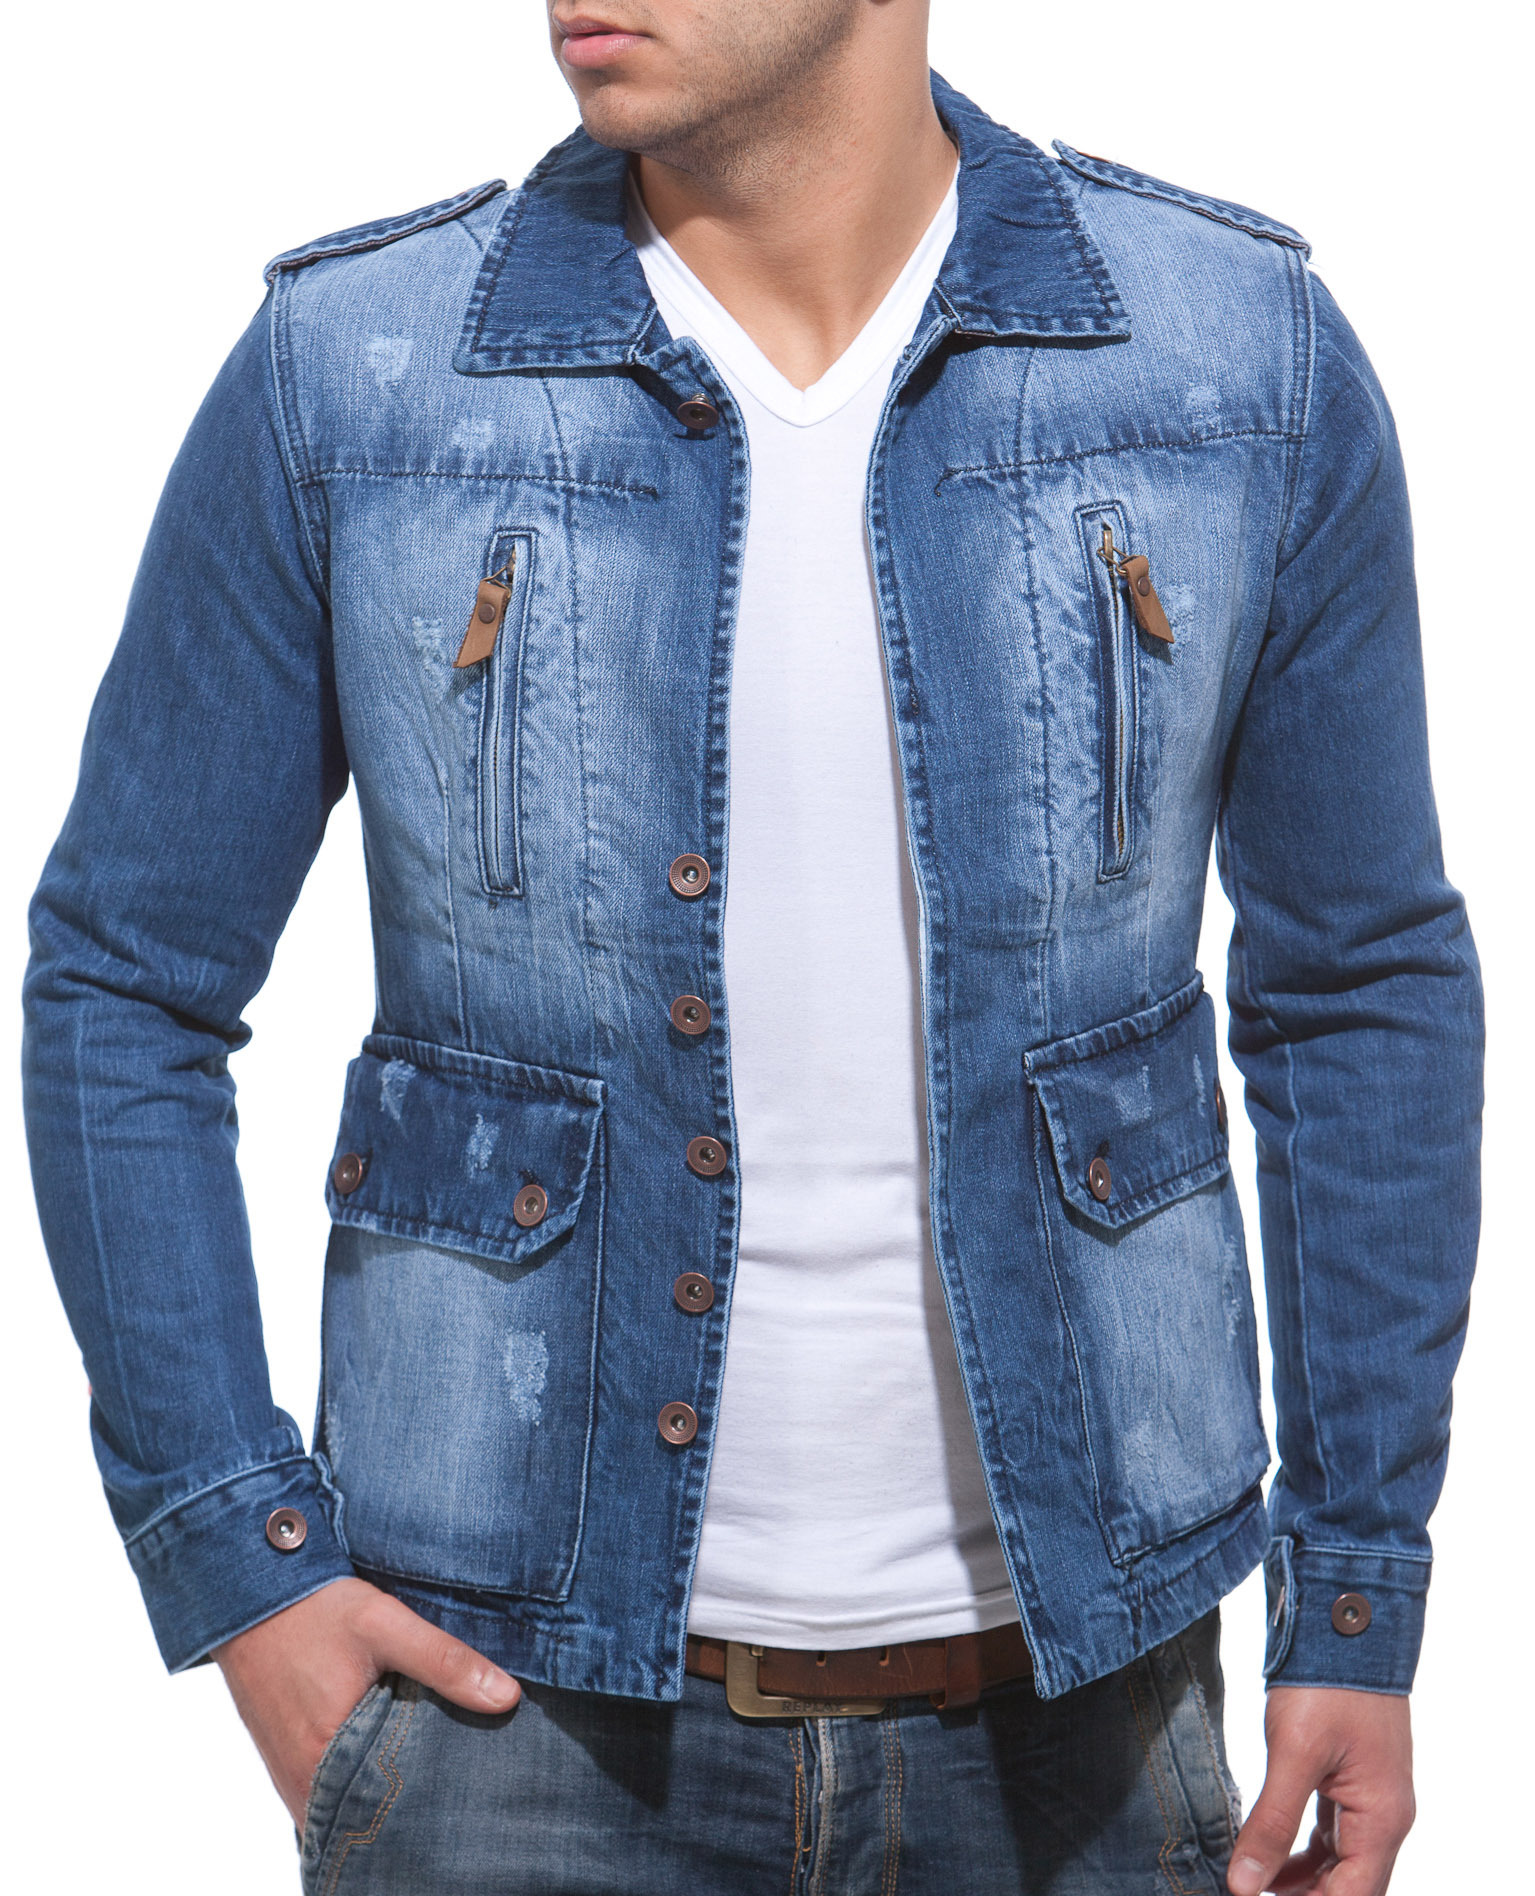 balandi herren jeans jeansjacke jacke denim sakko blazer neu style shirt 8000 ebay. Black Bedroom Furniture Sets. Home Design Ideas